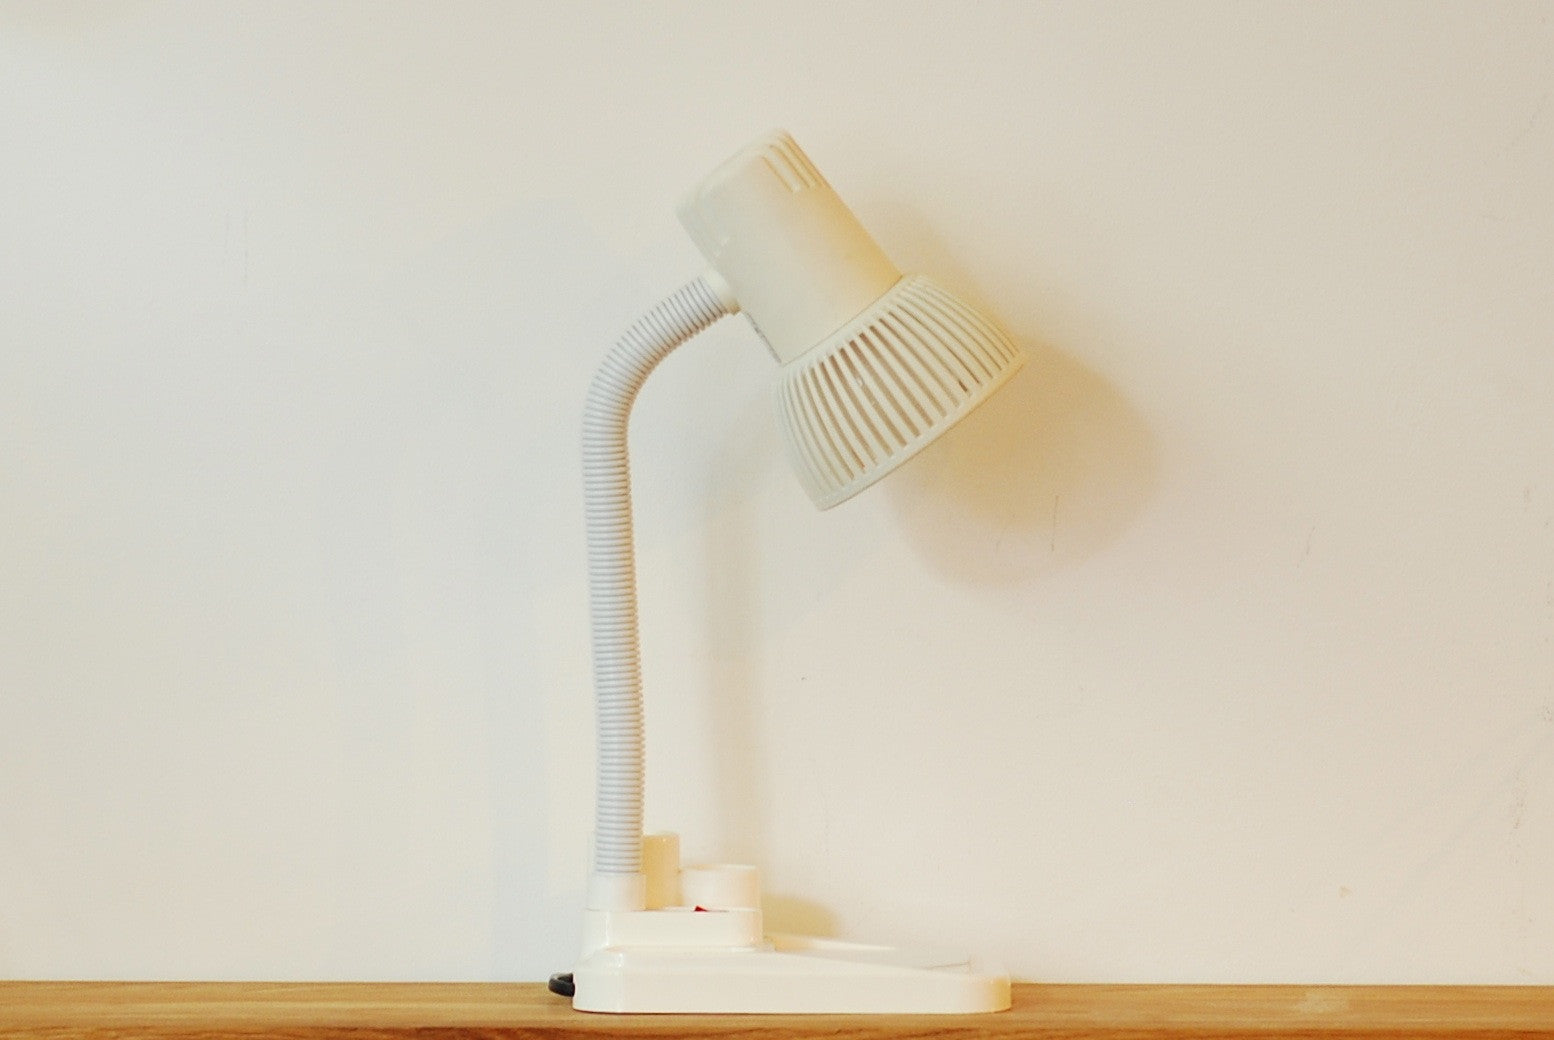 Desk lamp by Nordlux